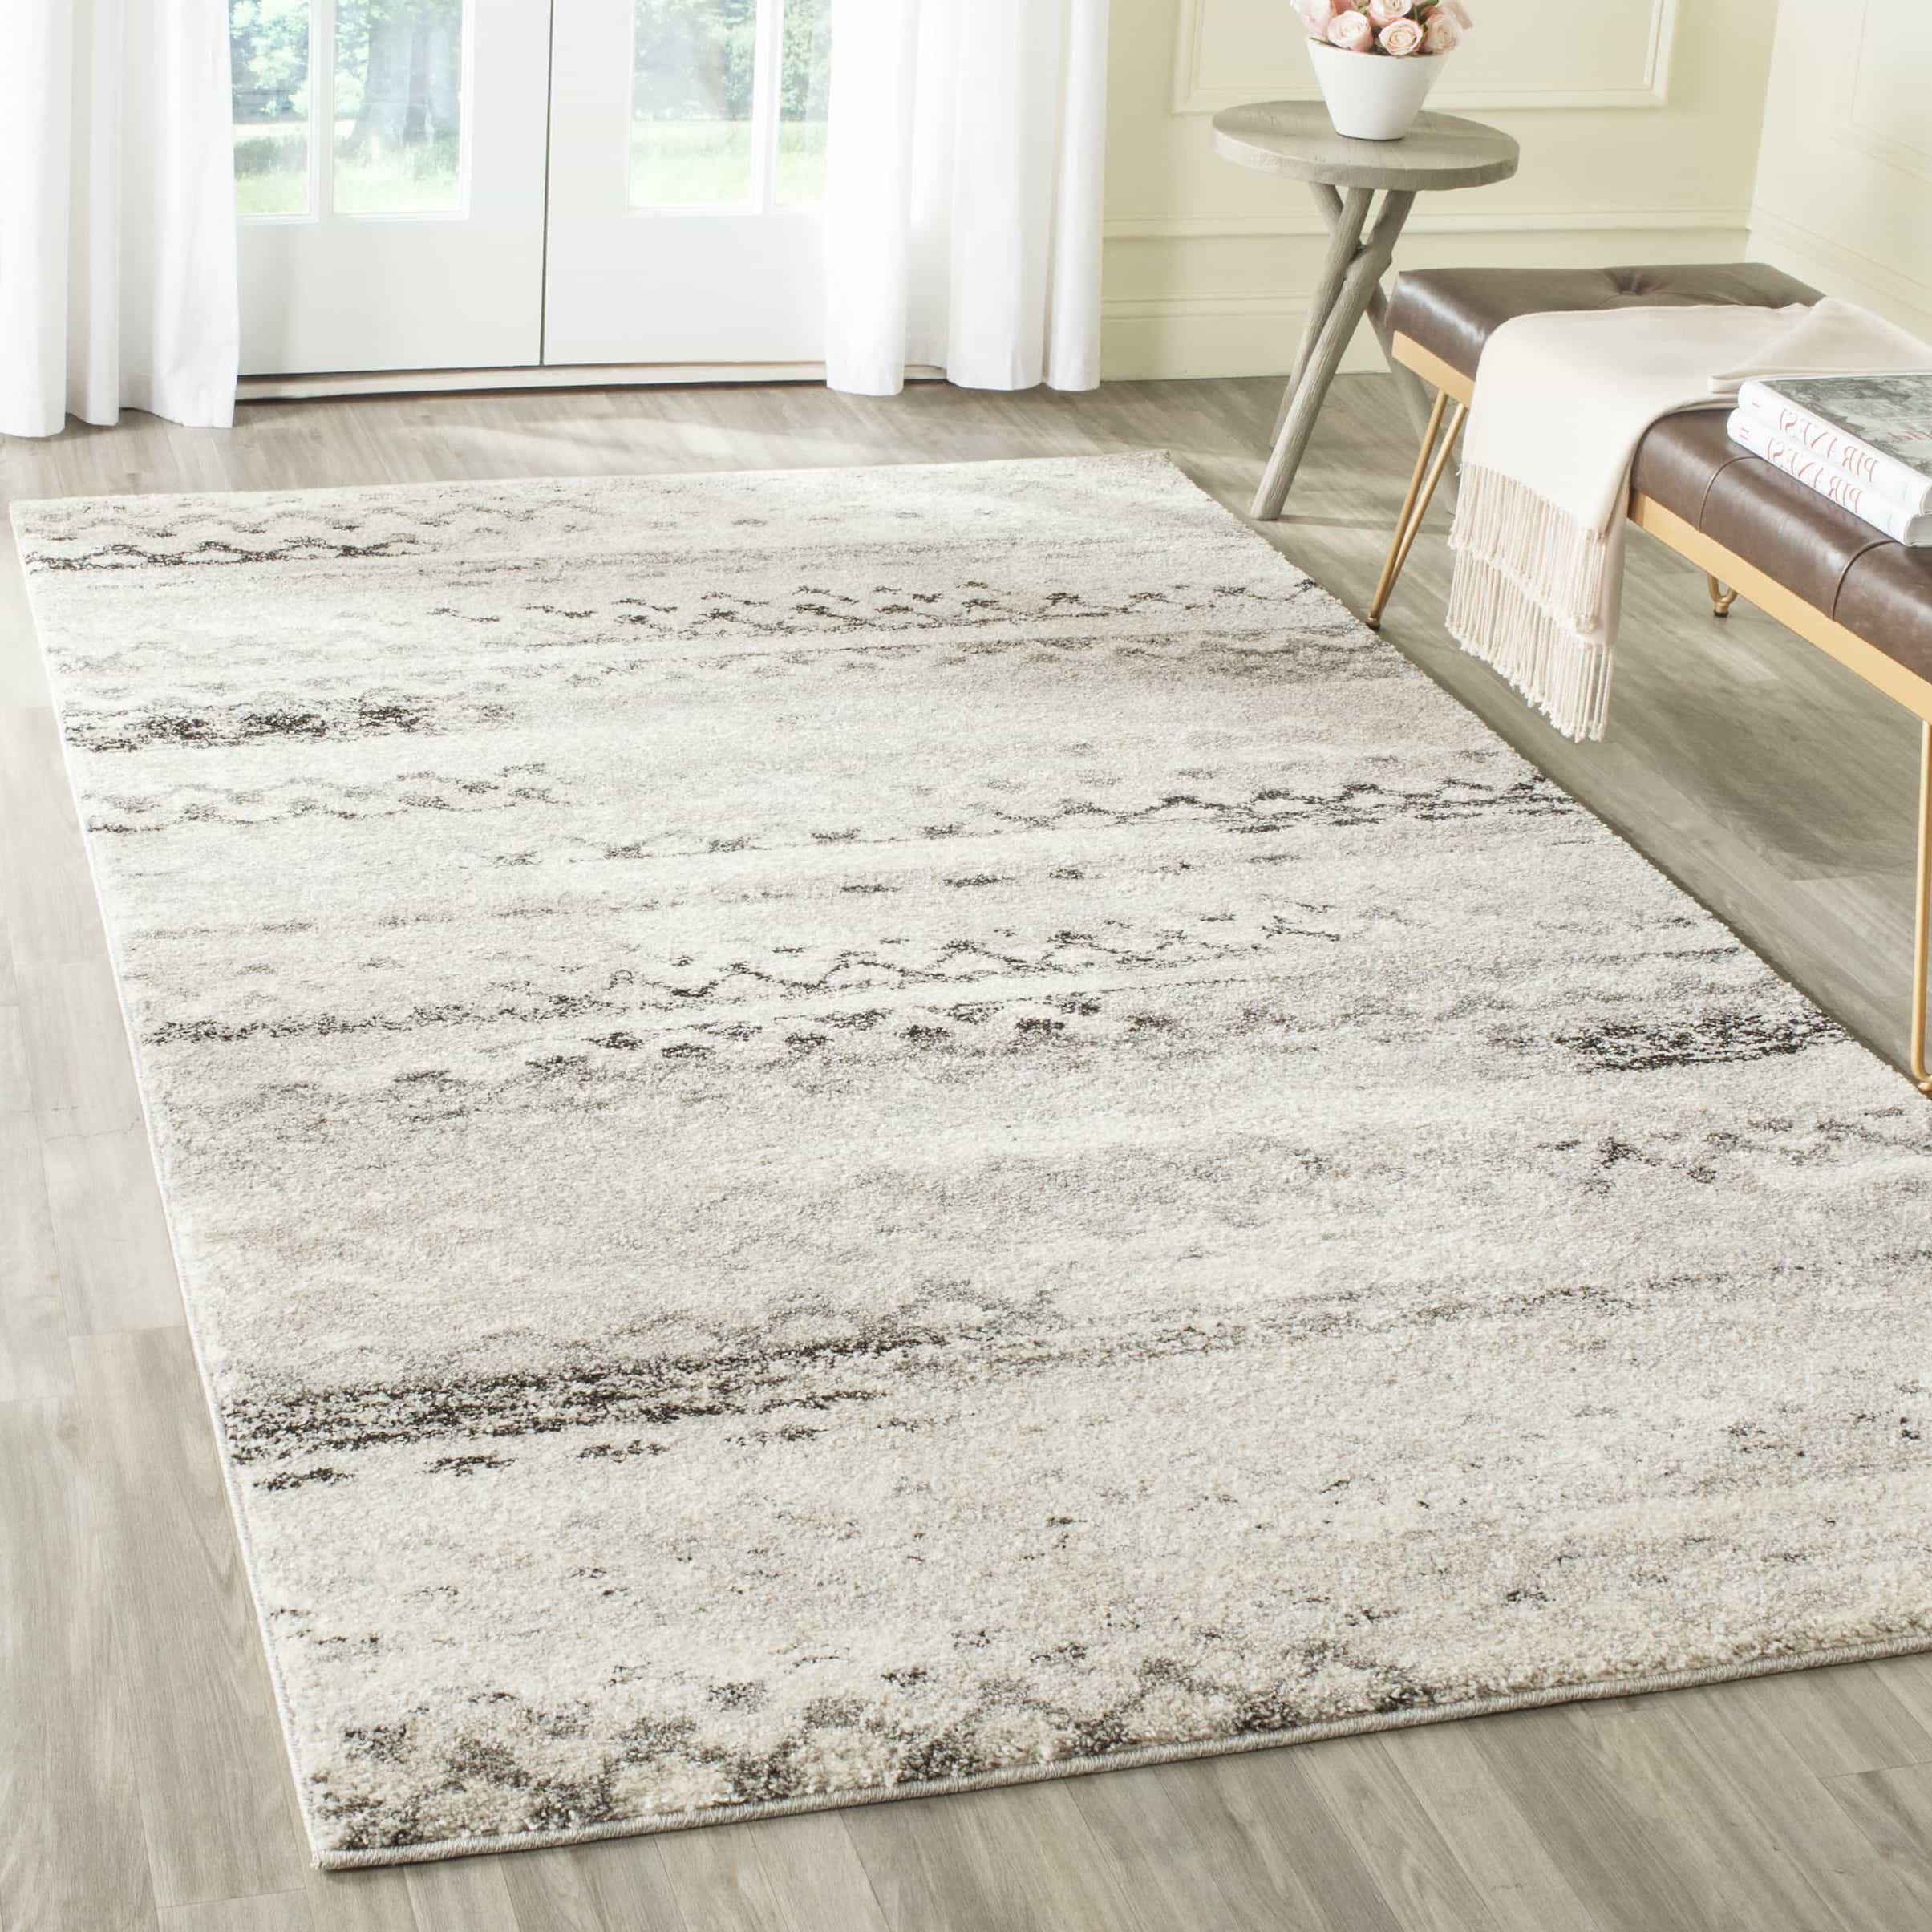 Flokati Rug For Orange And Taupe Living Room (View 2 of 10)